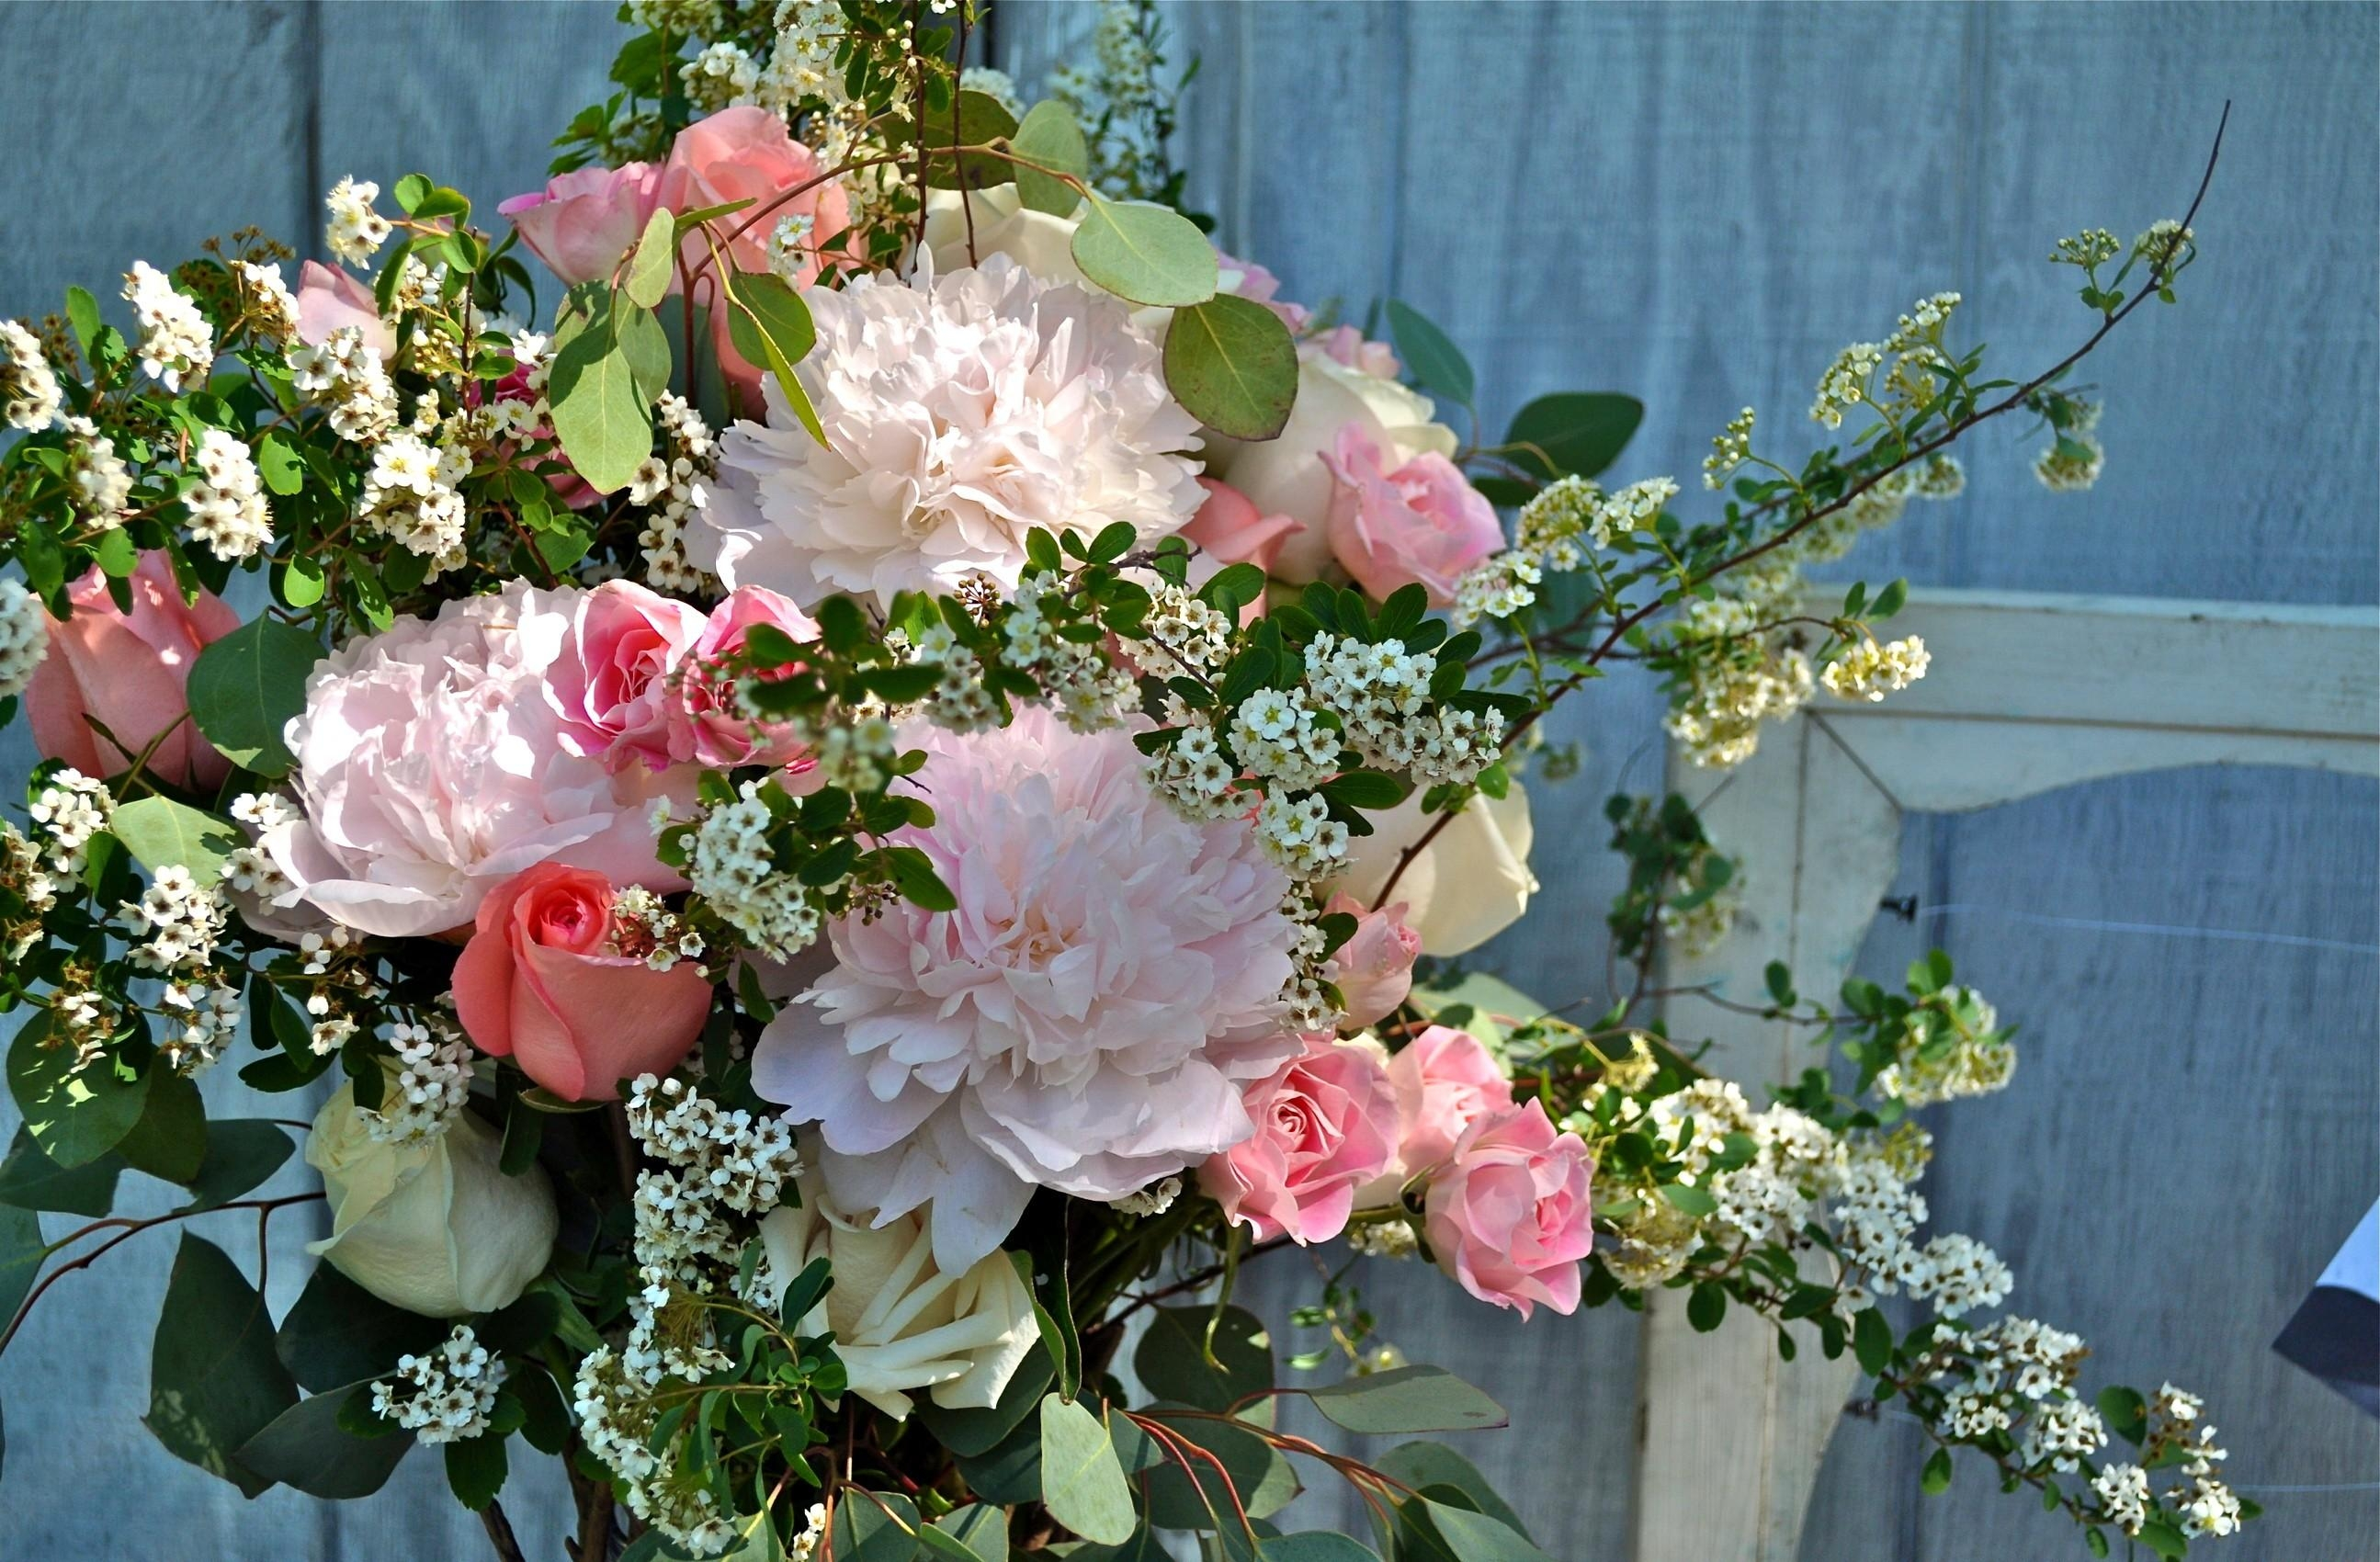 96463 download wallpaper Flowers, Roses, Peonies, Branches, Bouquet, Tea Tree screensavers and pictures for free